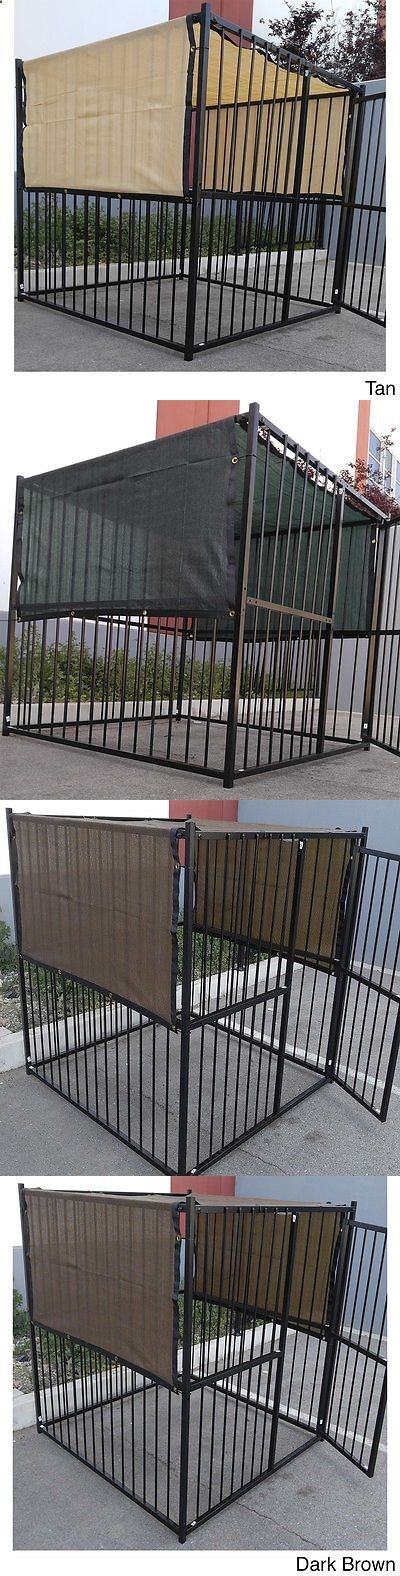 Dog Houses 108884: Outdoor Dog Kennel Cover Knitted Screen Sun Shade Cloth Uv 88% 6X10, 6X12, 6X15 -> BUY IT NOW ONLY: $31.49 on eBay!